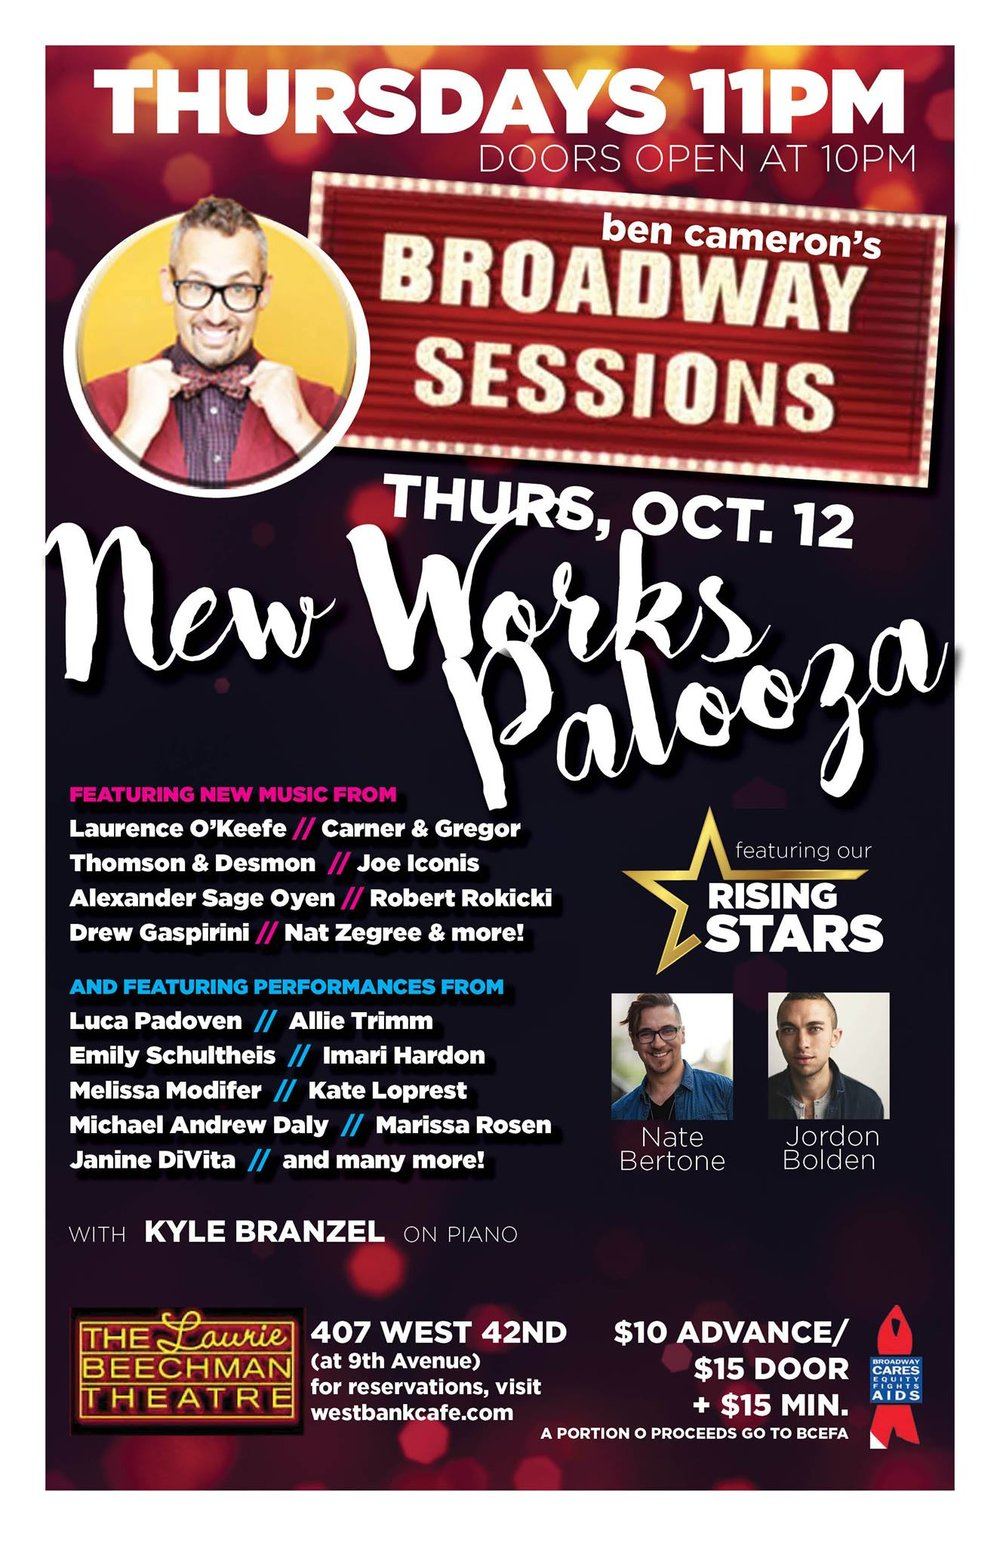 Broadway Sessions _ New Works Palooza